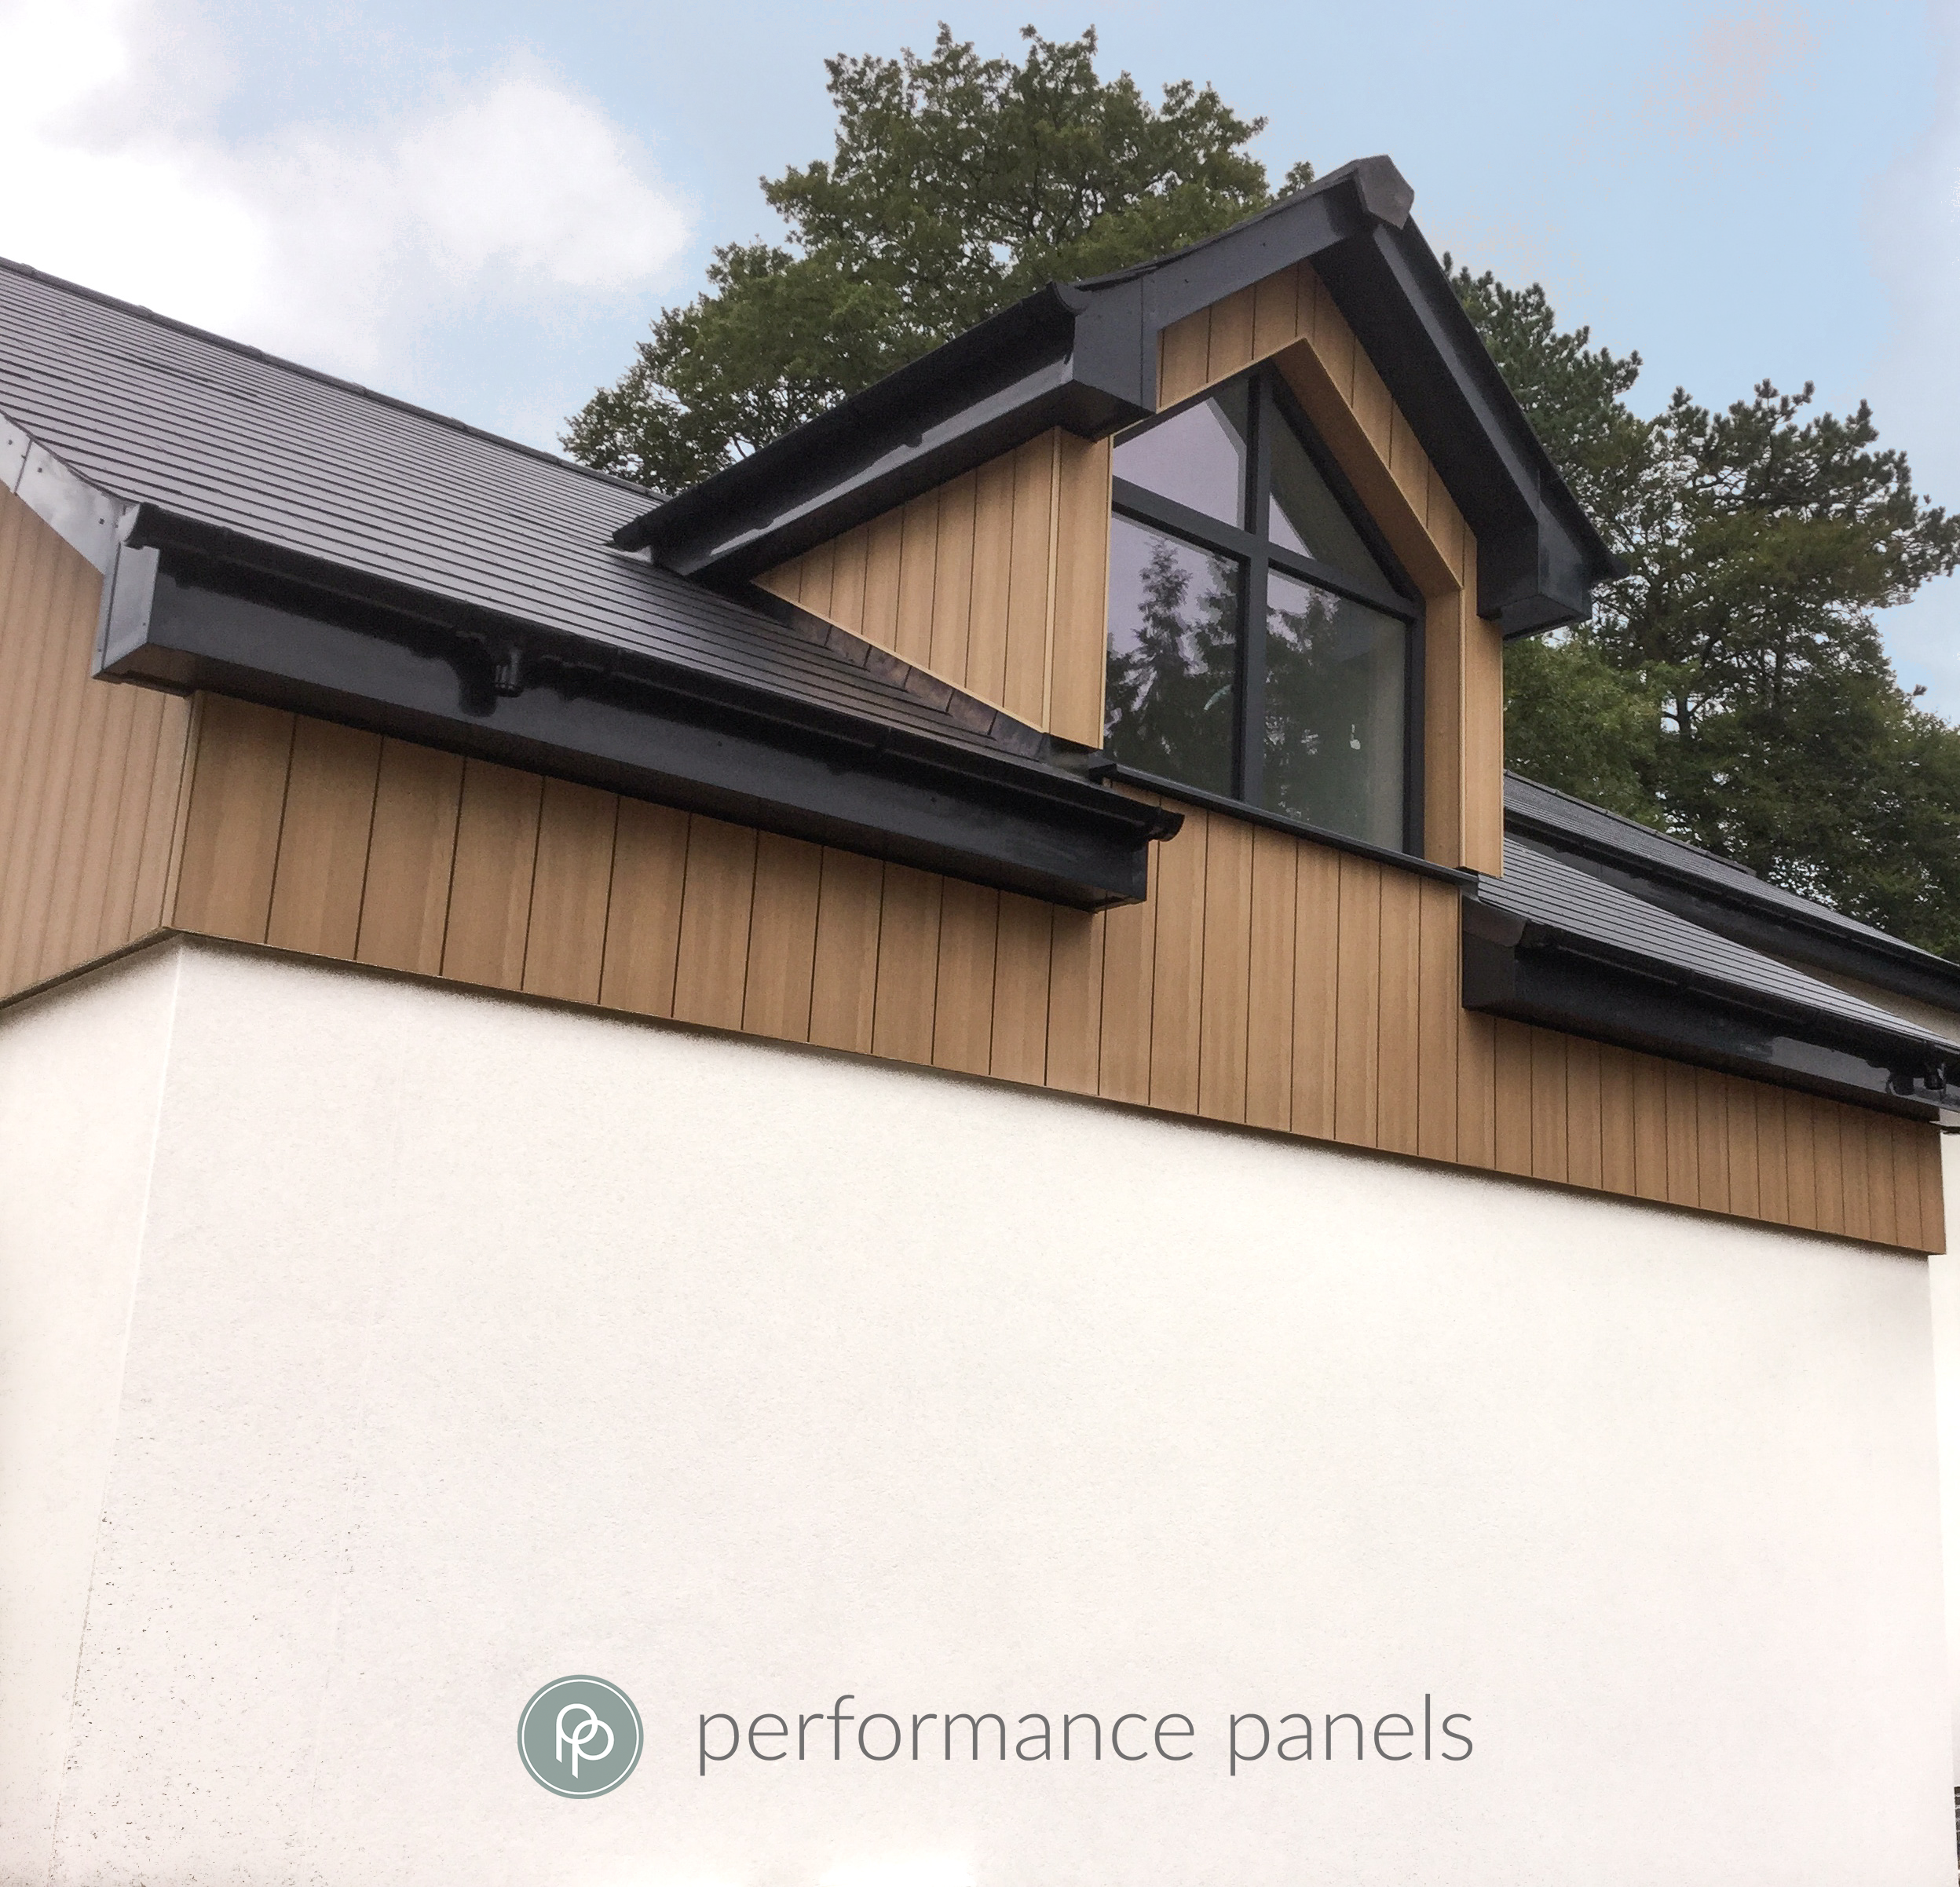 Trespa Pura Nfc Vertical Flush Finish Smart Cladding